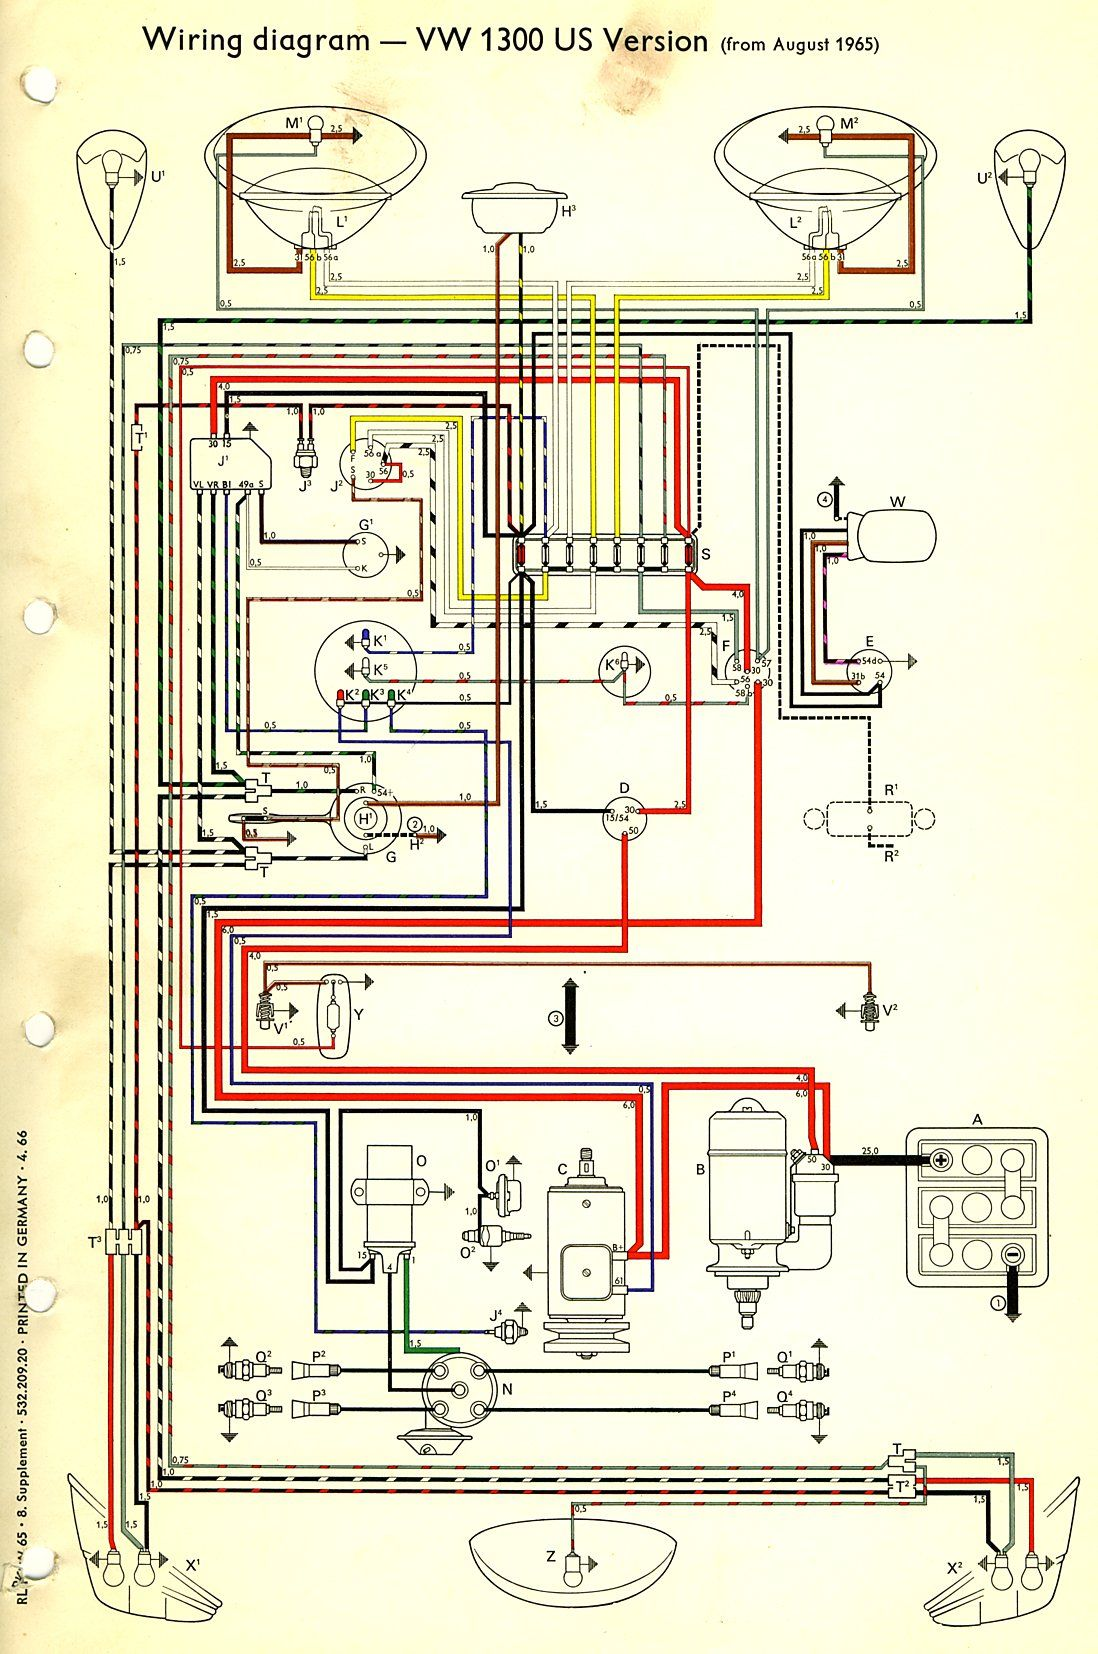 69 Vw Generator Wiring Diagram - ~ Wiring Diagram Portal ~ •  Volkswagen Wiring Schematic on engine schematics, plumbing schematics, transmission schematics, transformer schematics, amplifier schematics, wire schematics, ford diagrams schematics, circuit schematics, electronics schematics, ignition schematics, generator schematics, piping schematics, ecu schematics, ductwork schematics, motor schematics, computer schematics, electrical schematics, tube amp schematics, engineering schematics, design schematics,